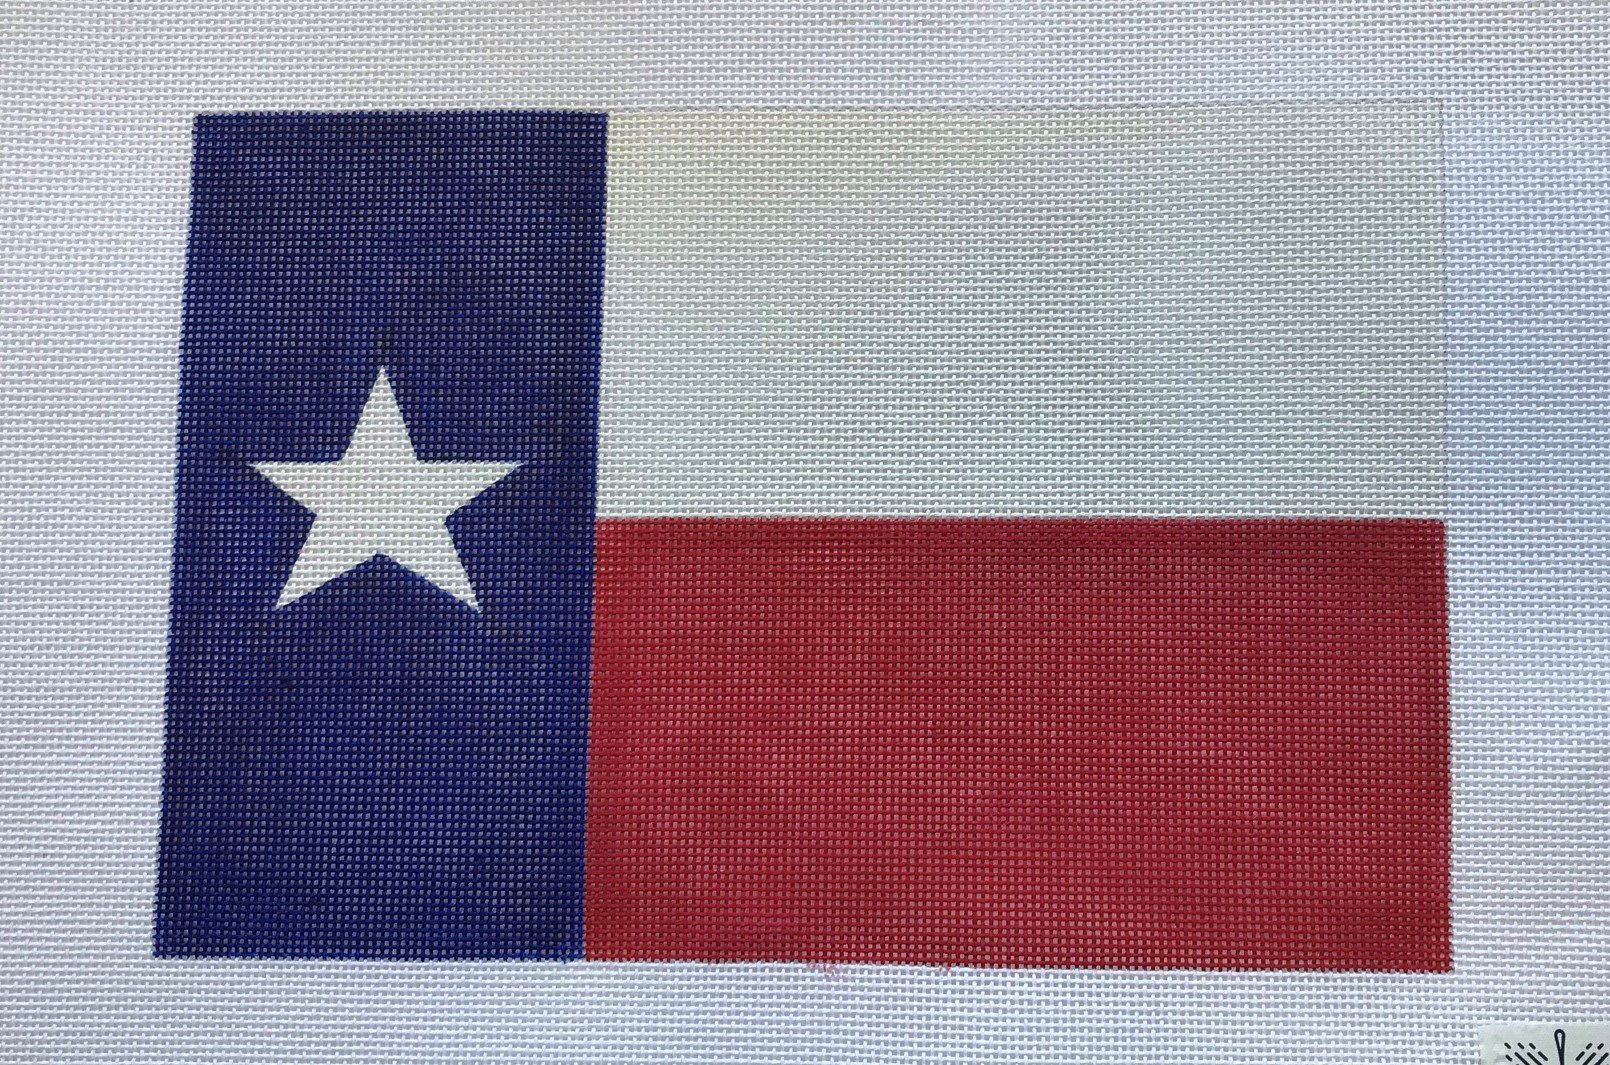 PS/TX01 Tapestry of Texas w Stitch Guide